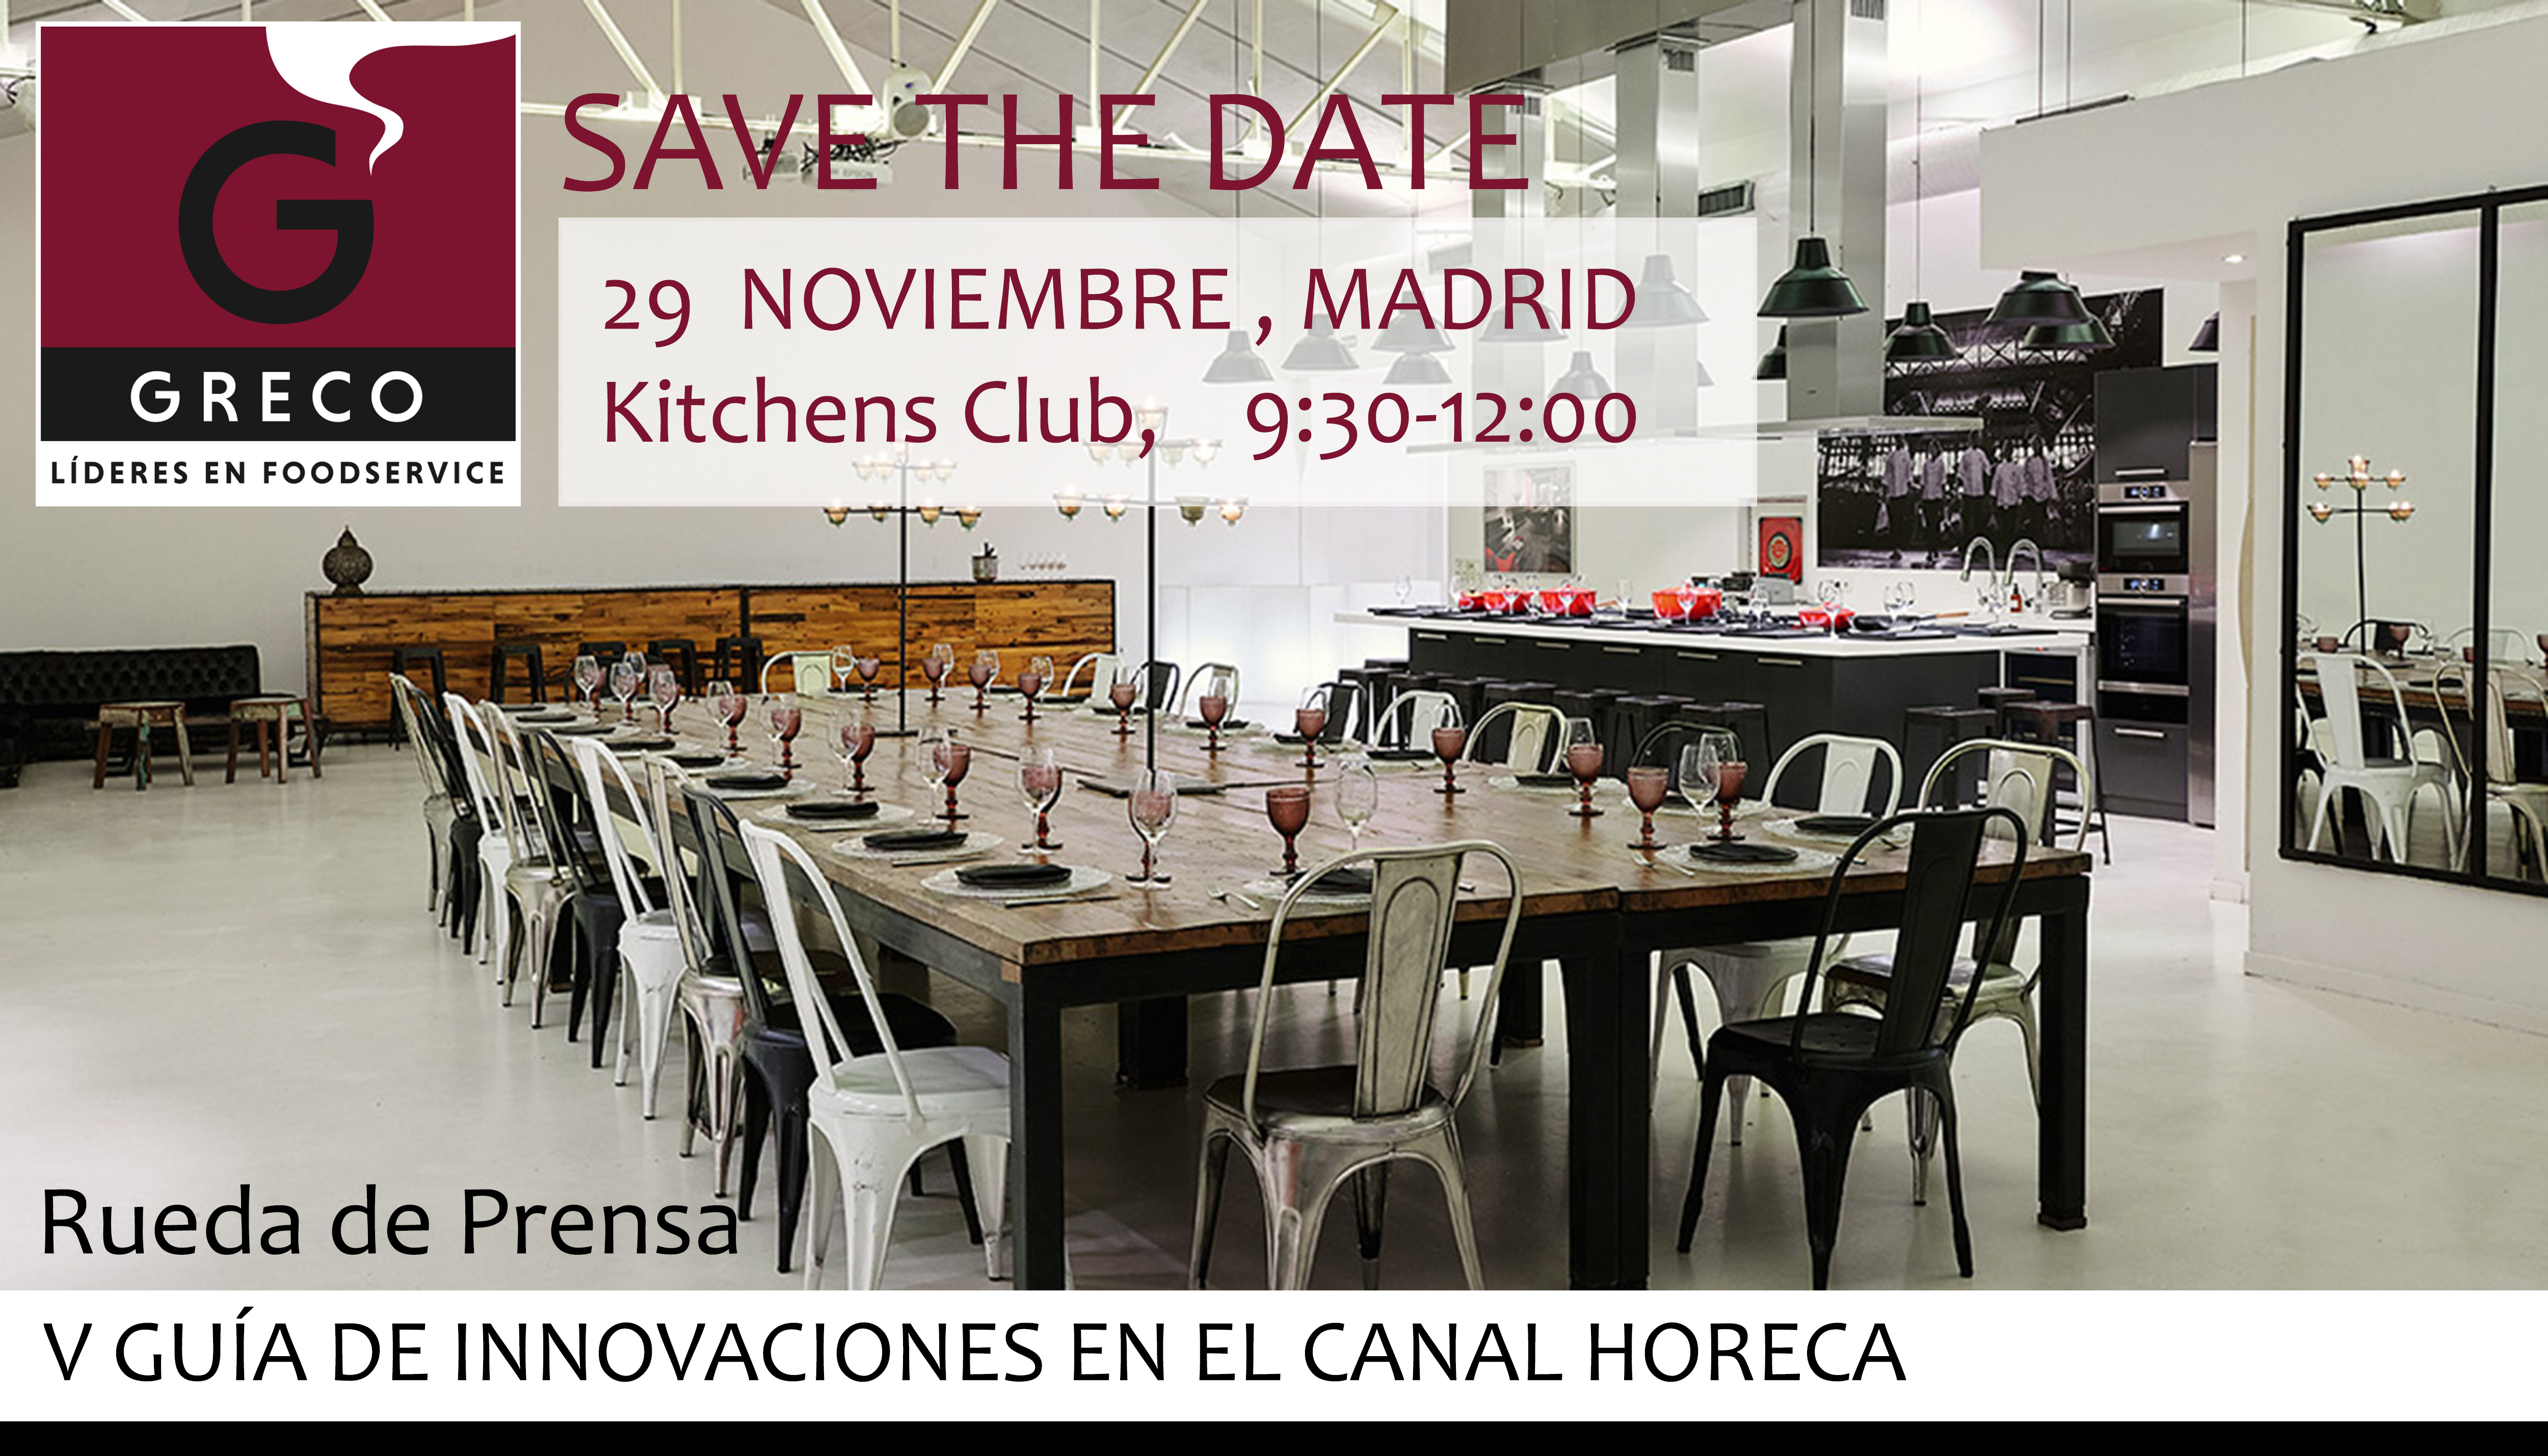 SAVE THE DATE: Rueda de Prensa Club GRECO, 29 noviembre 2018 – Madrid